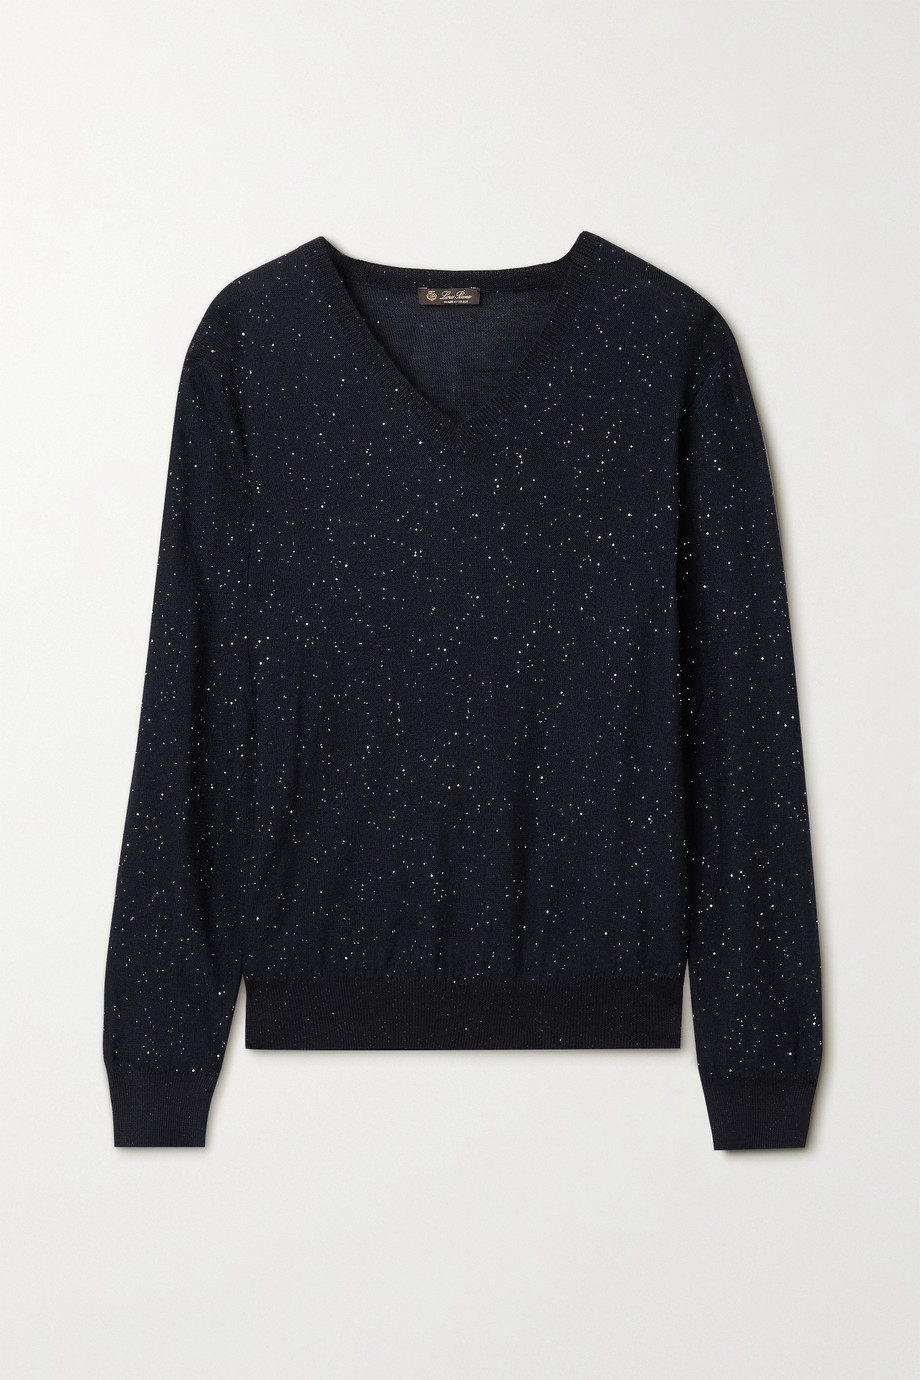 Loro Piana Sequin-embellished cashmere-blend sweater